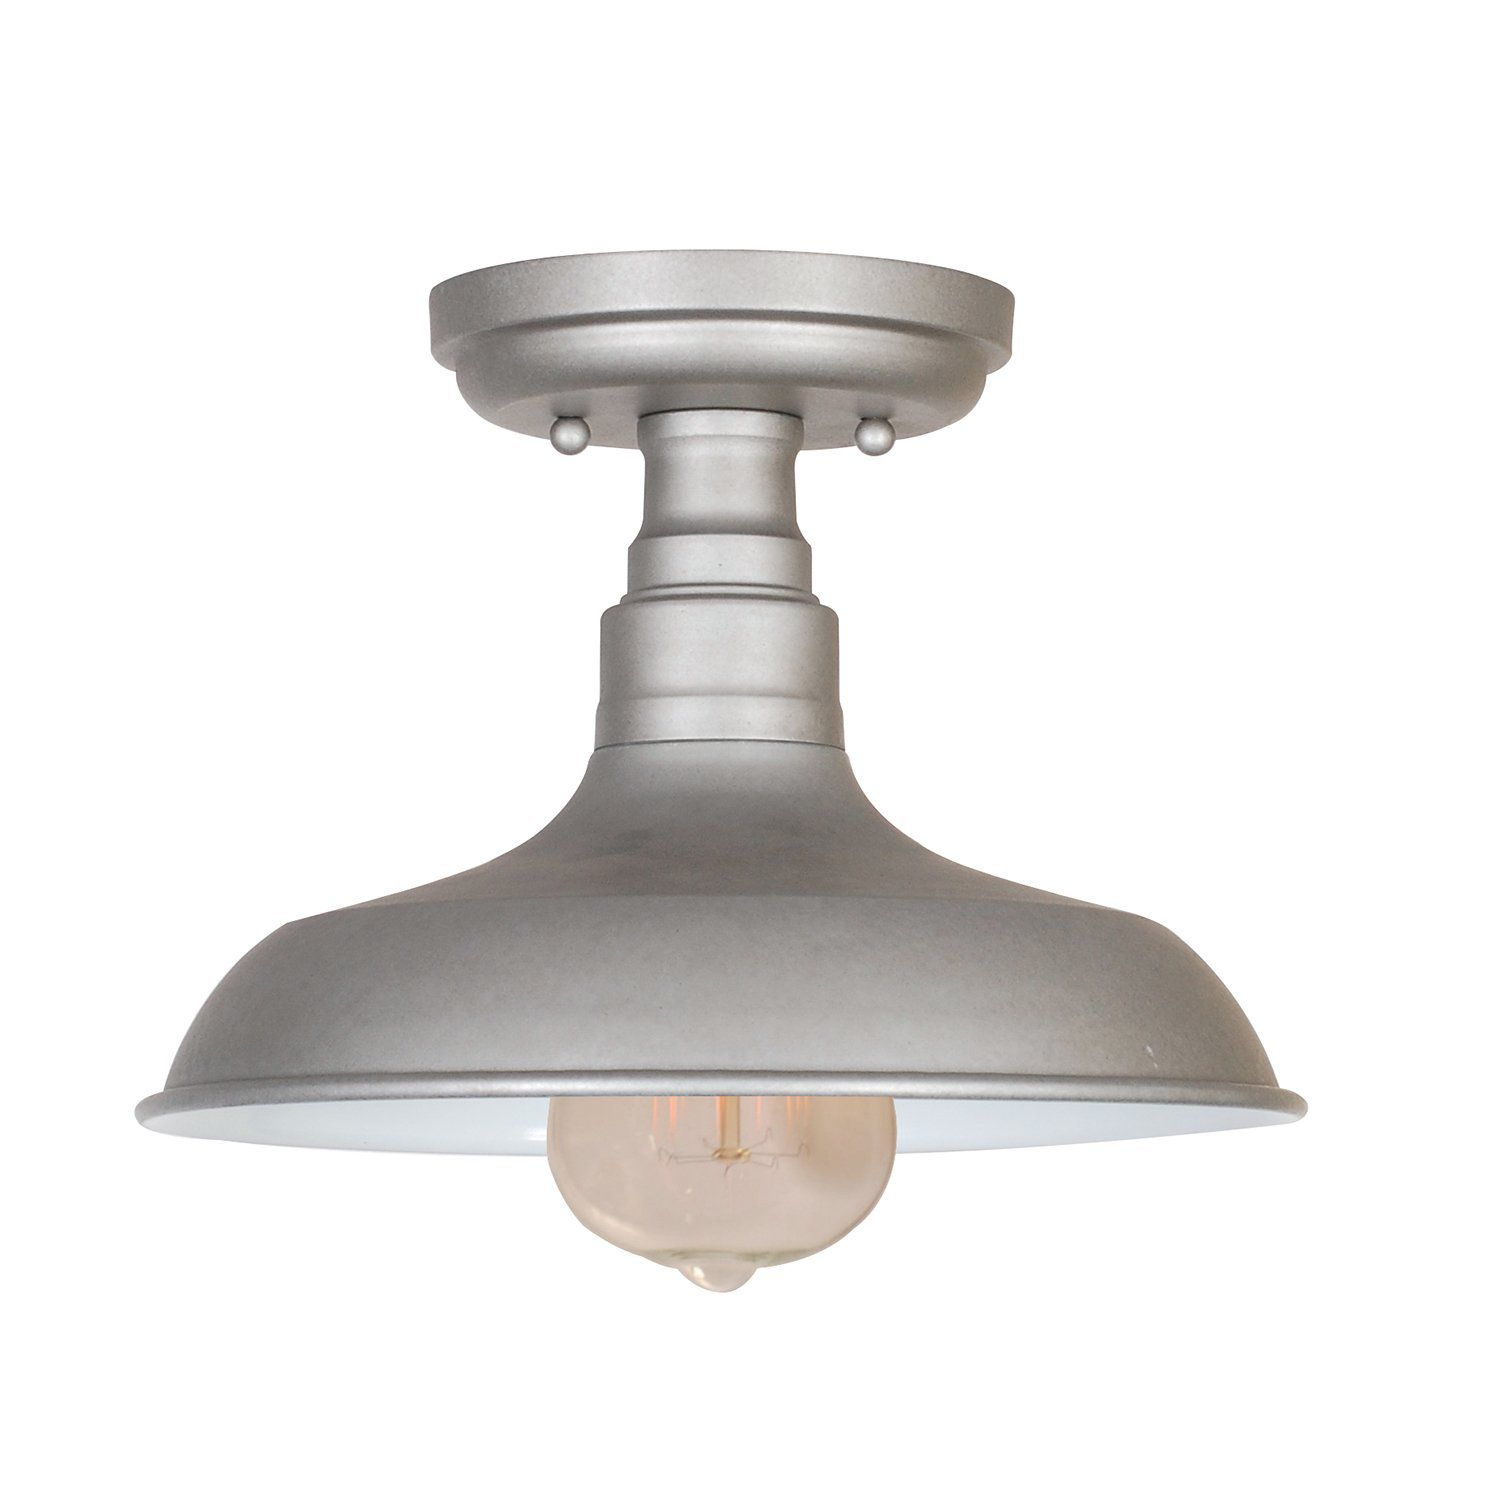 Design House 519876 Kimball 1 Light Semi Flush Mount Ceiling Light, Galvanized Steel Finish